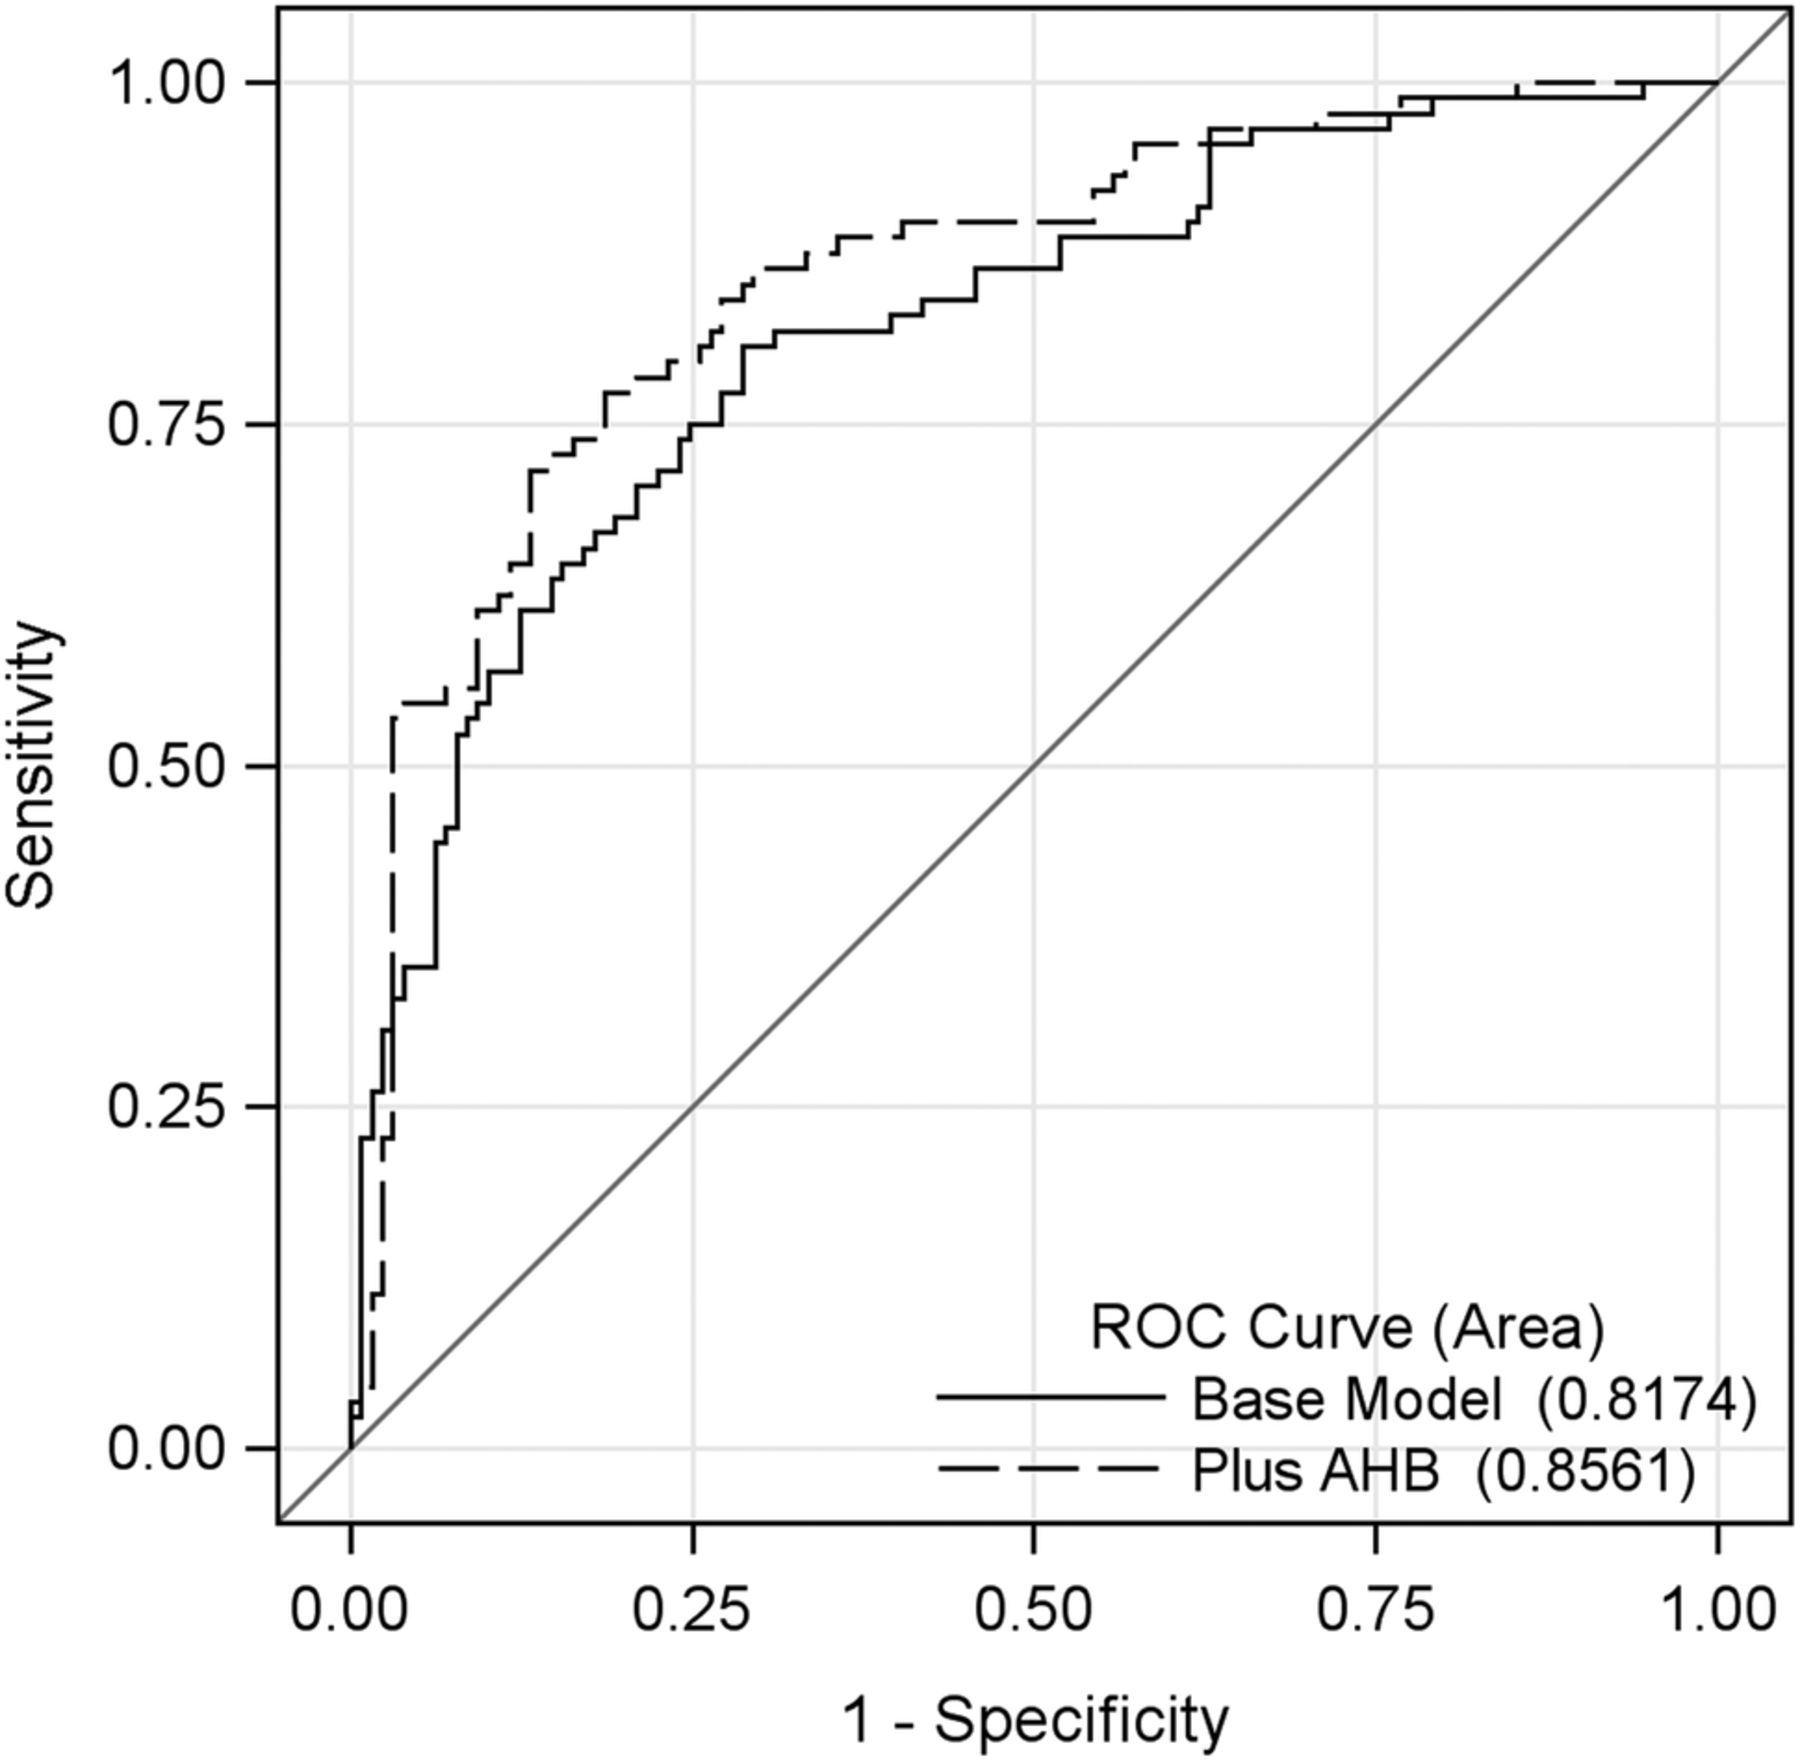 Serum α-hydroxybutyrate (α-HB) predicts elevated 1 h